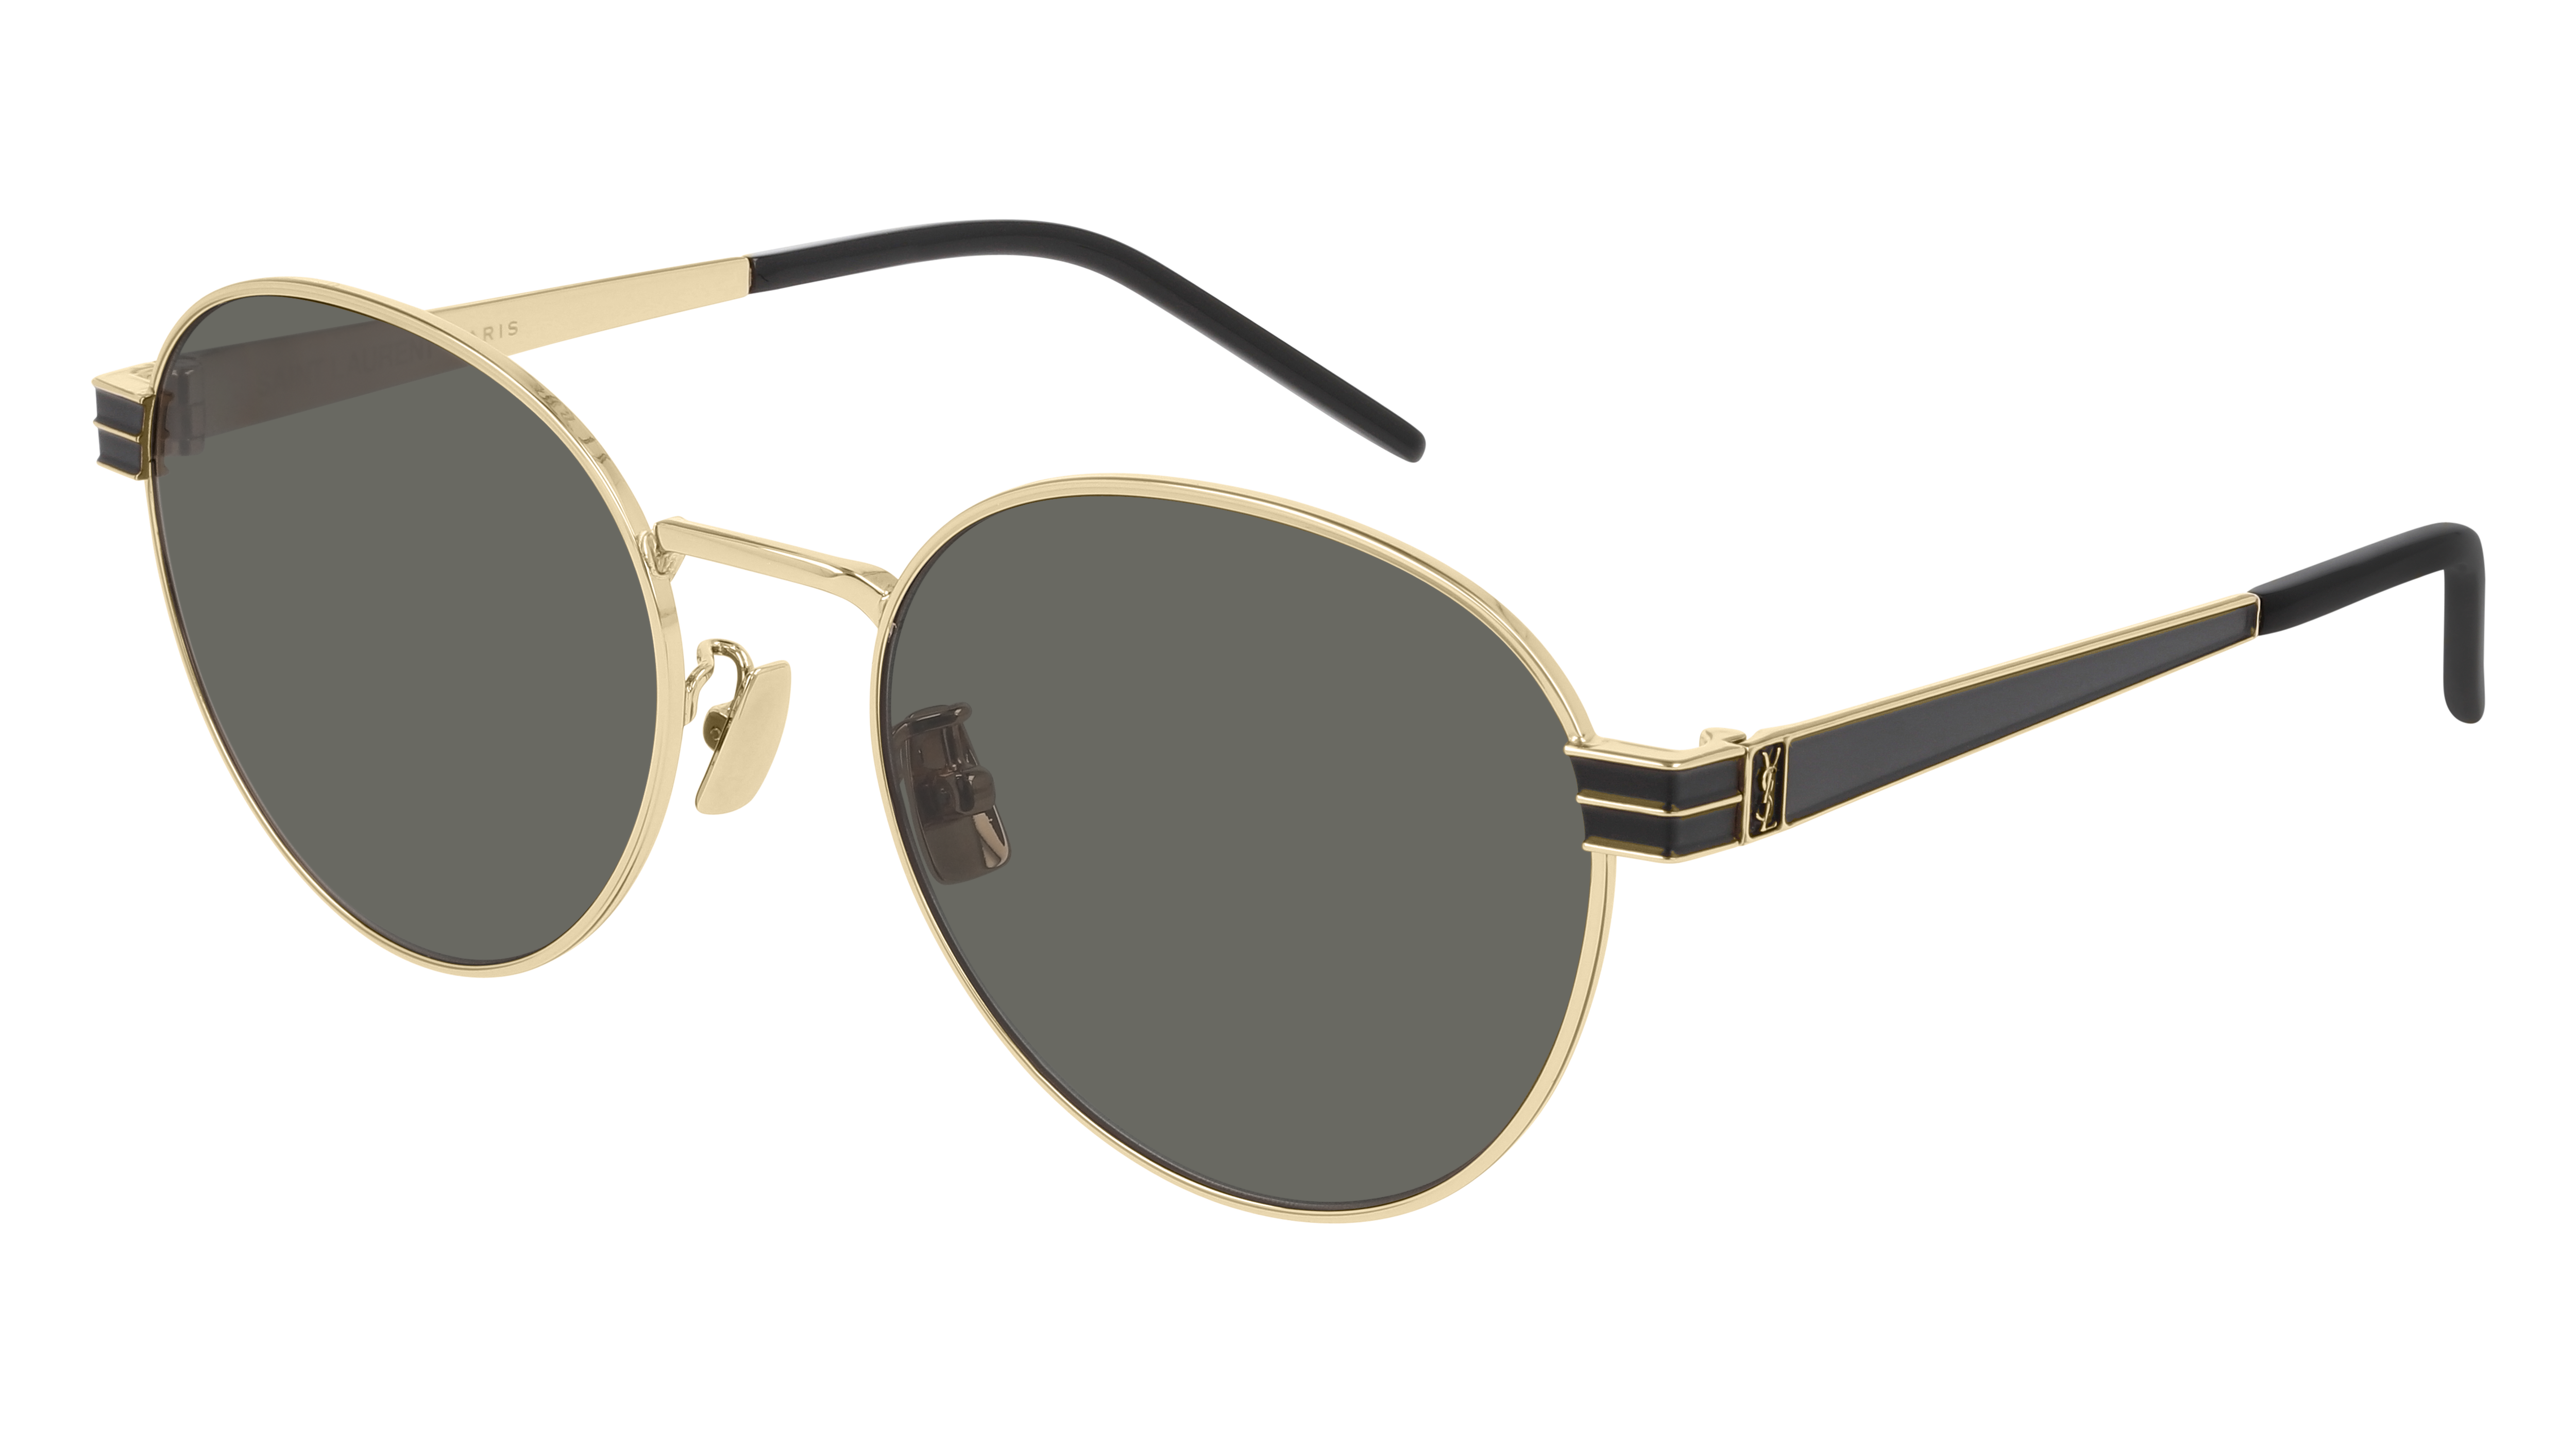 Saint Laurent M65 003